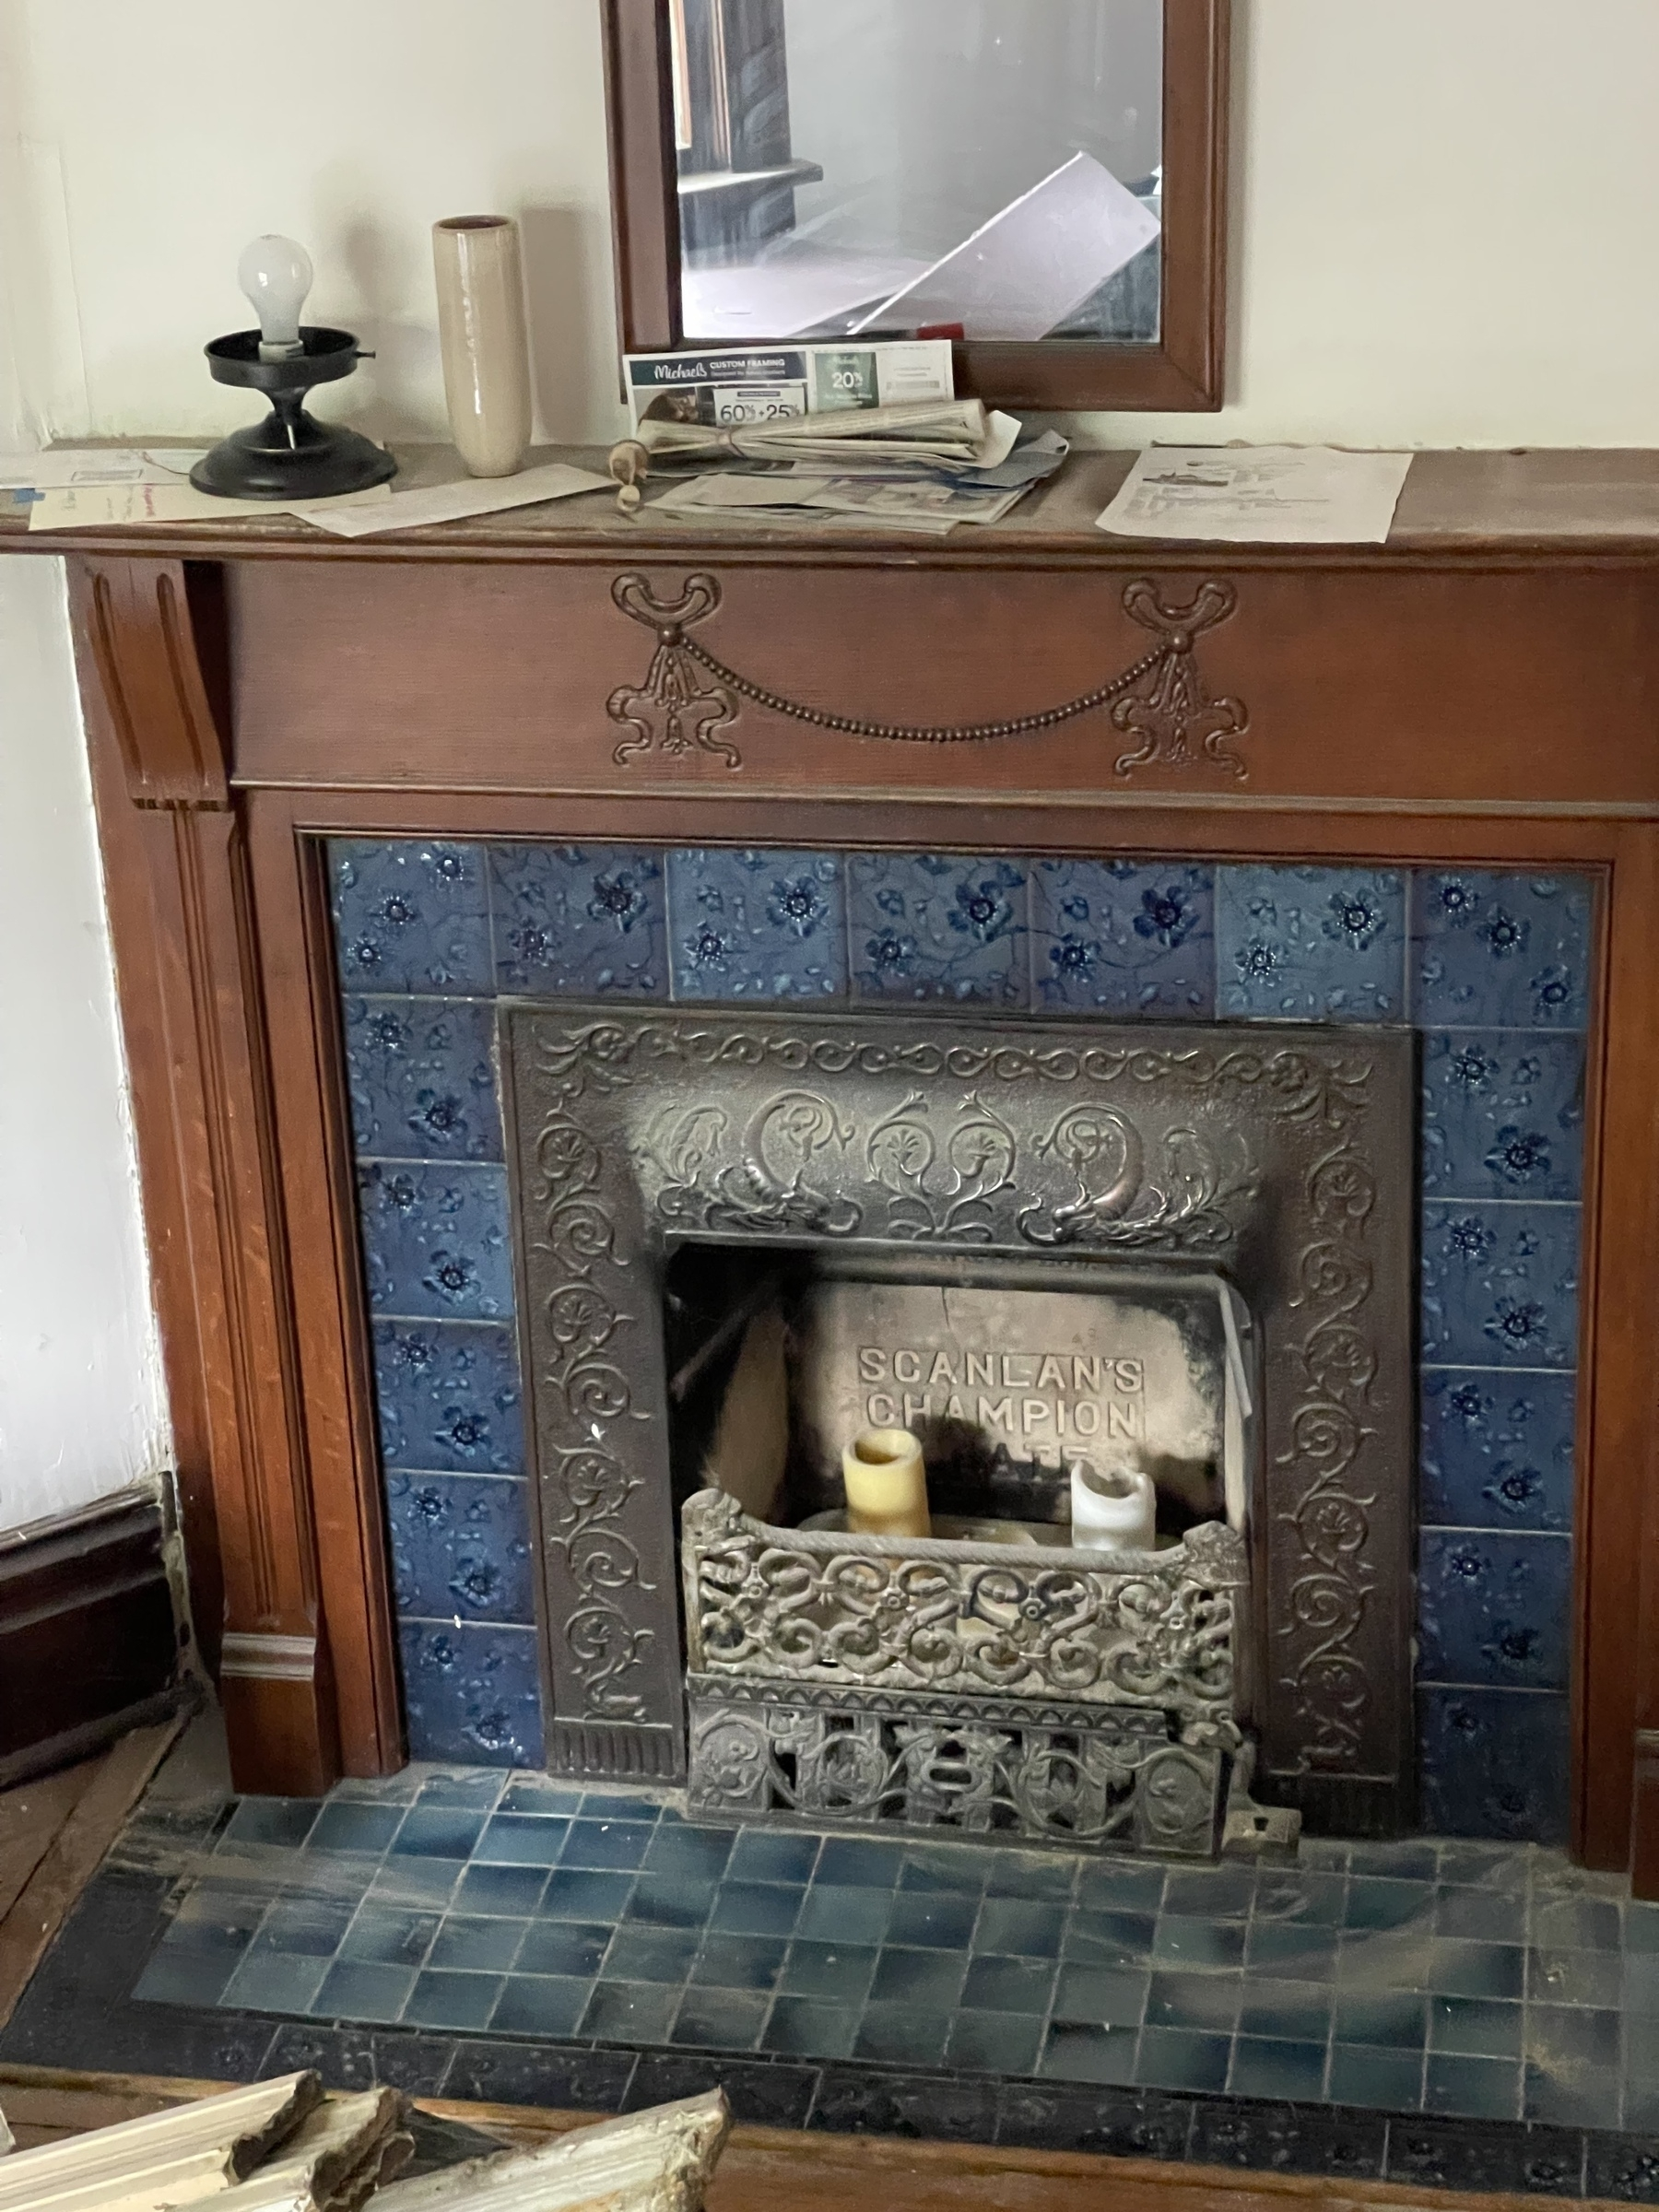 The tile! The carving in the lintel! The metalwork on the firebox! So much to love here.